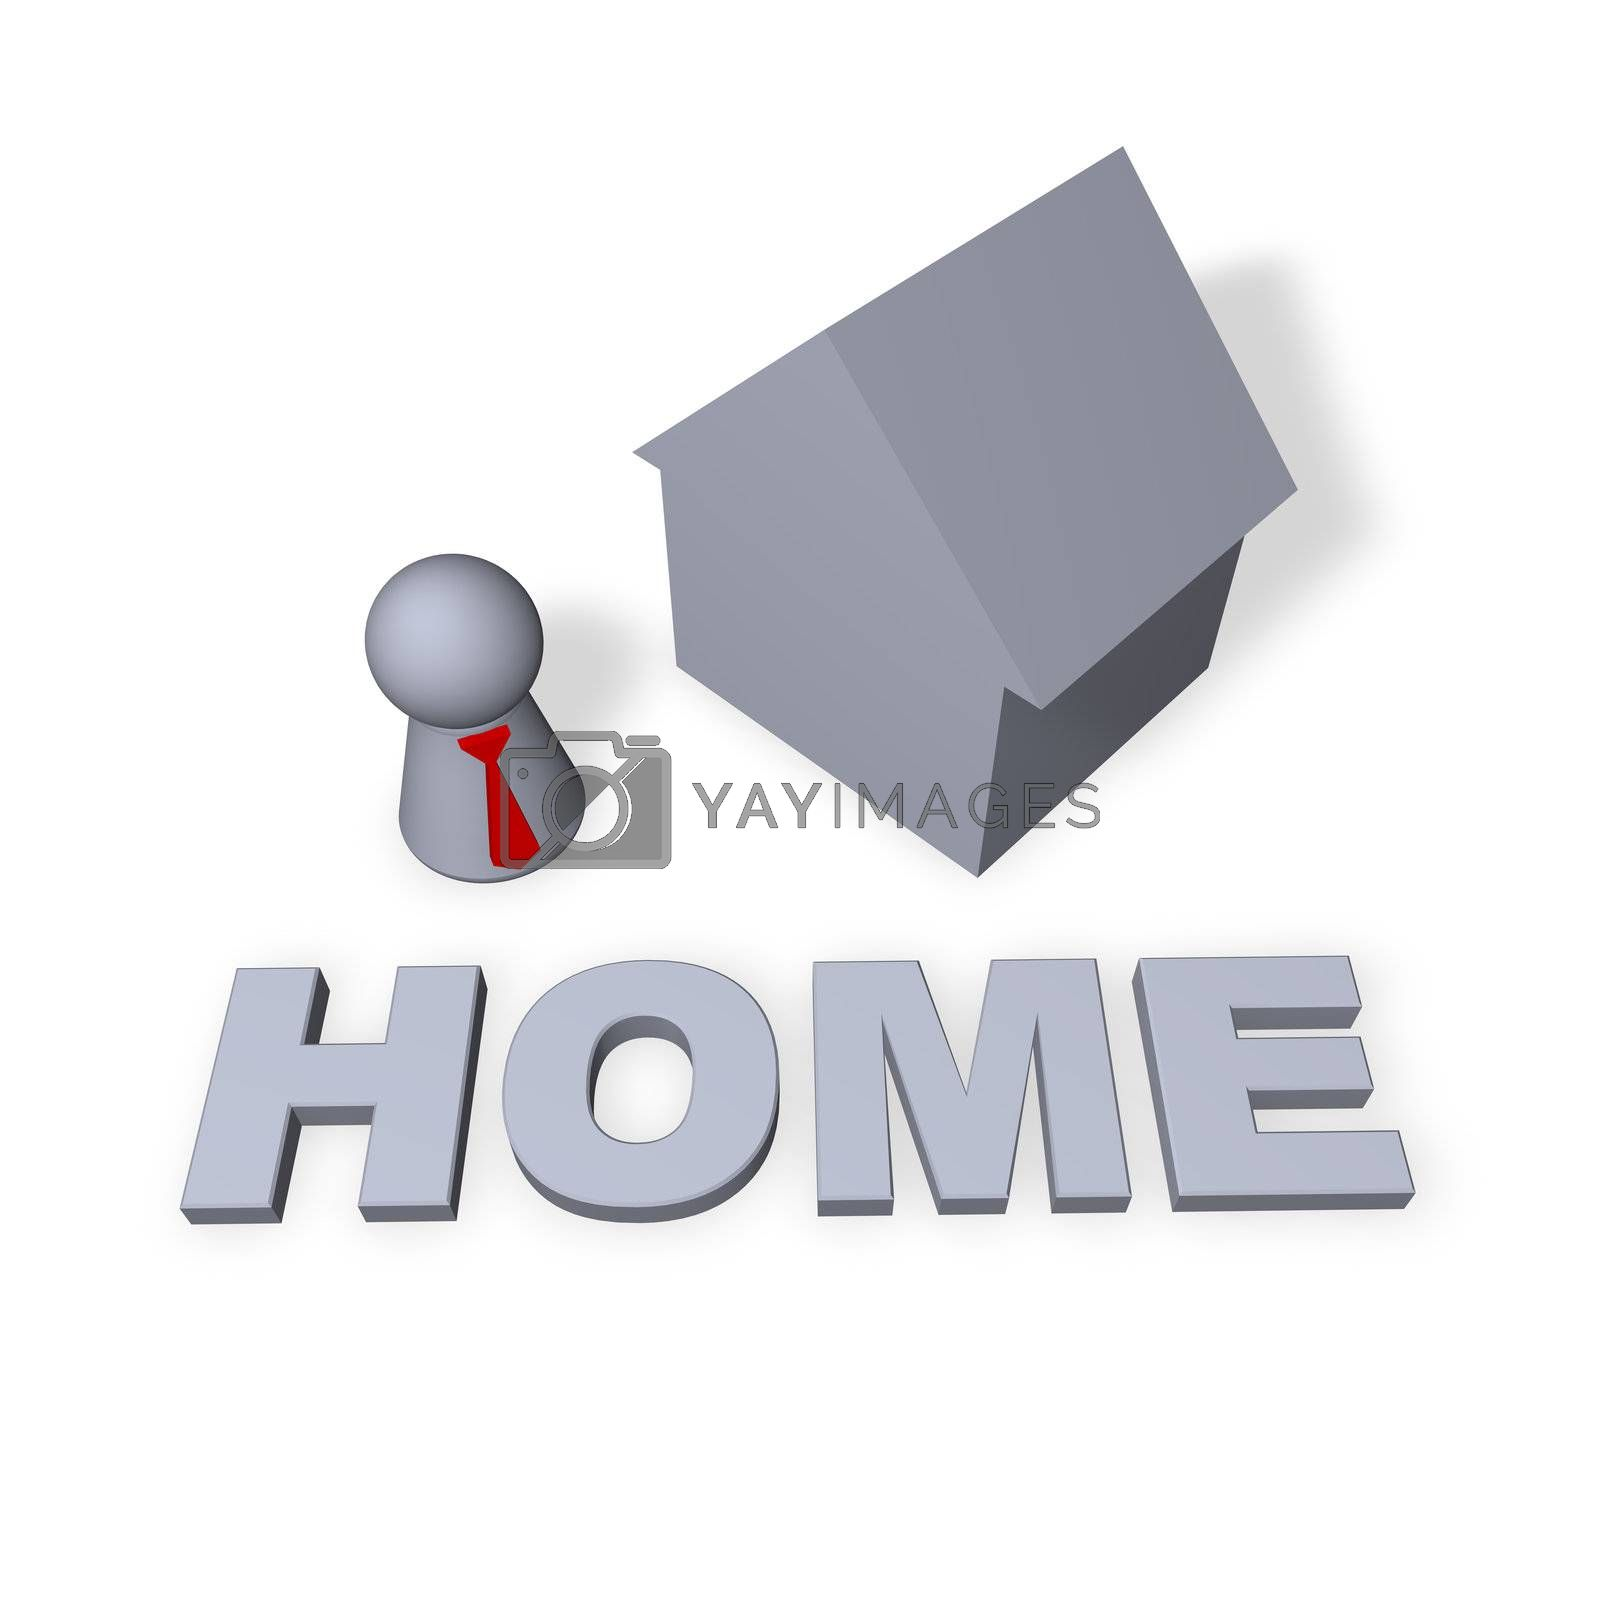 home text in 3d, a house and play figure with red tie